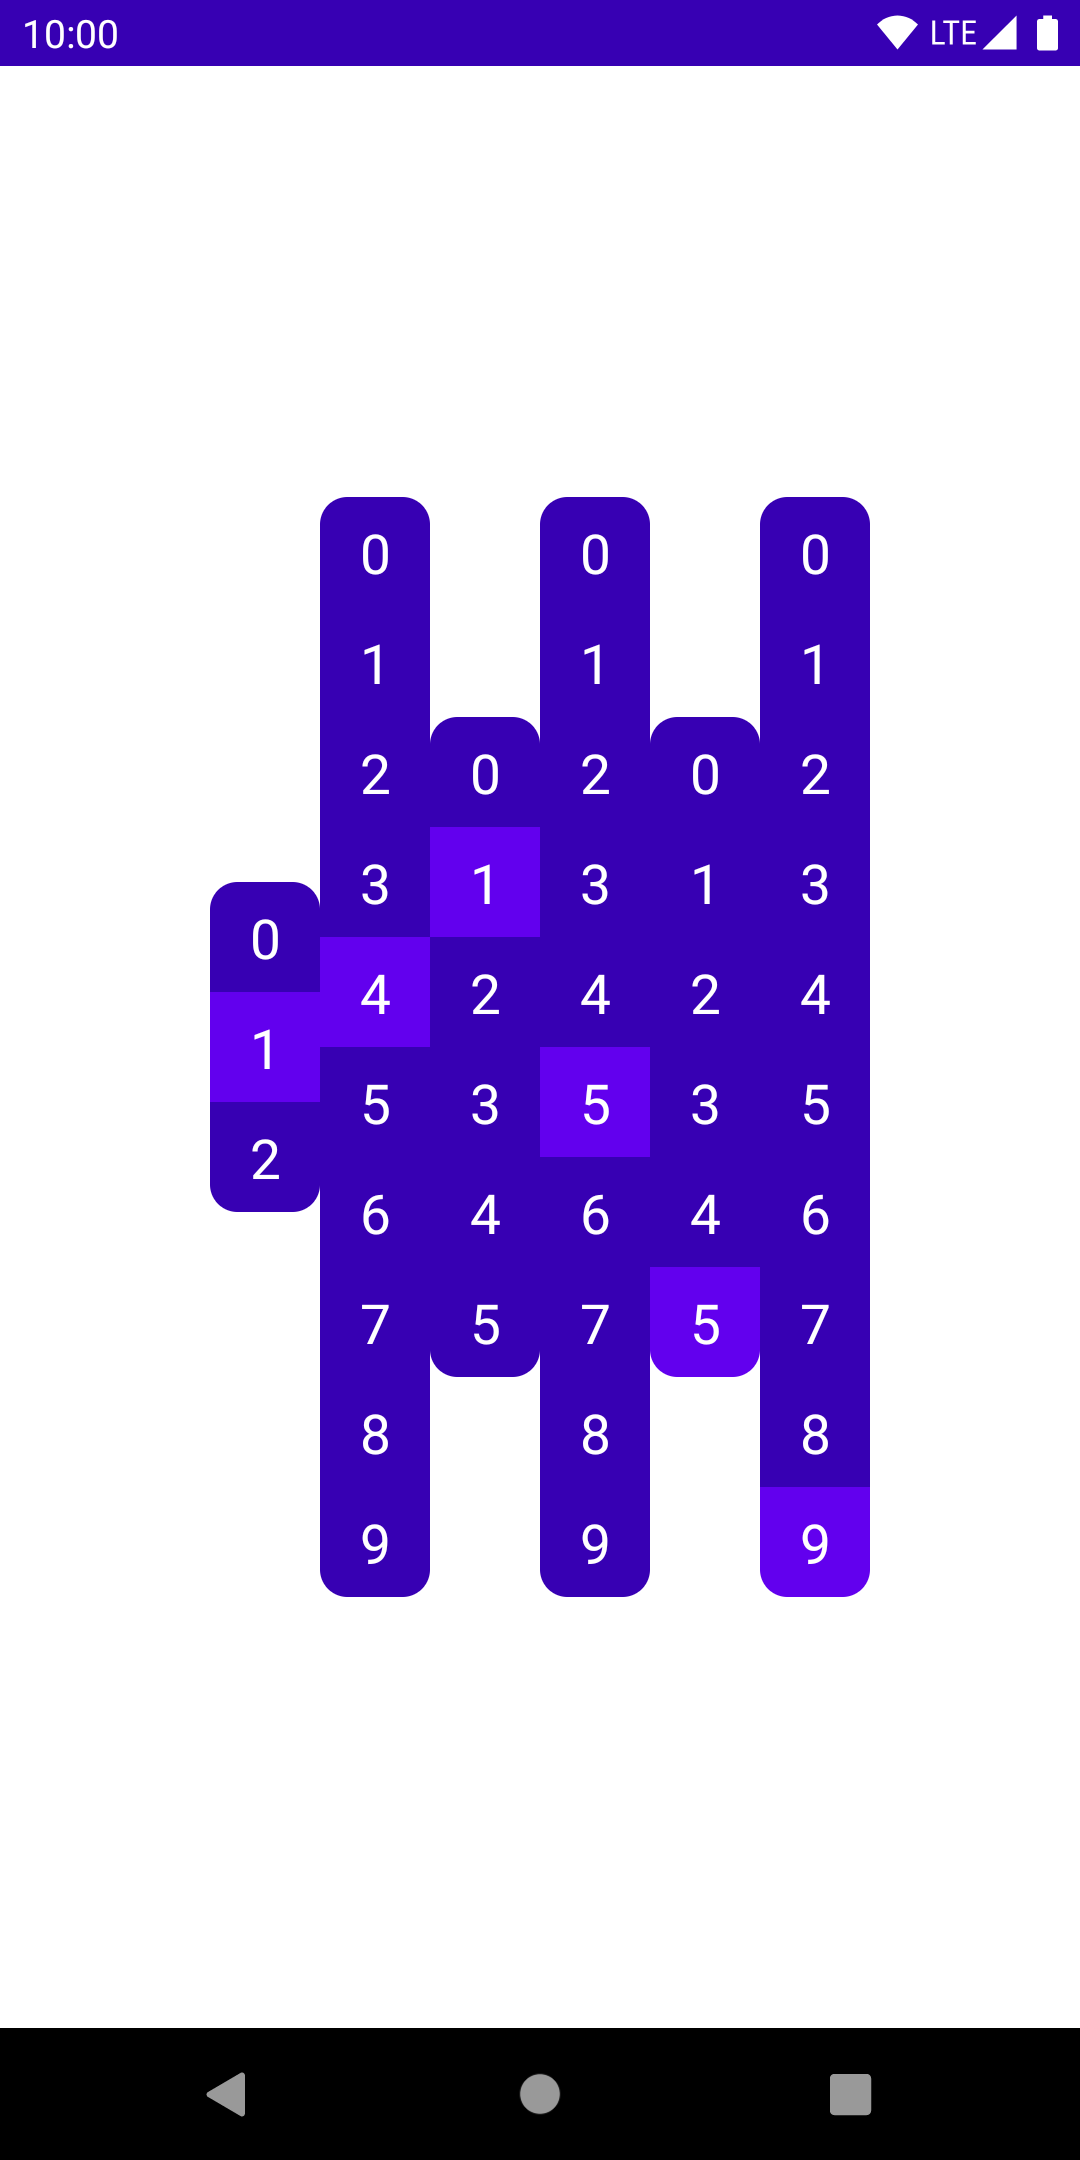 Multiple columns of digits, showing the current time